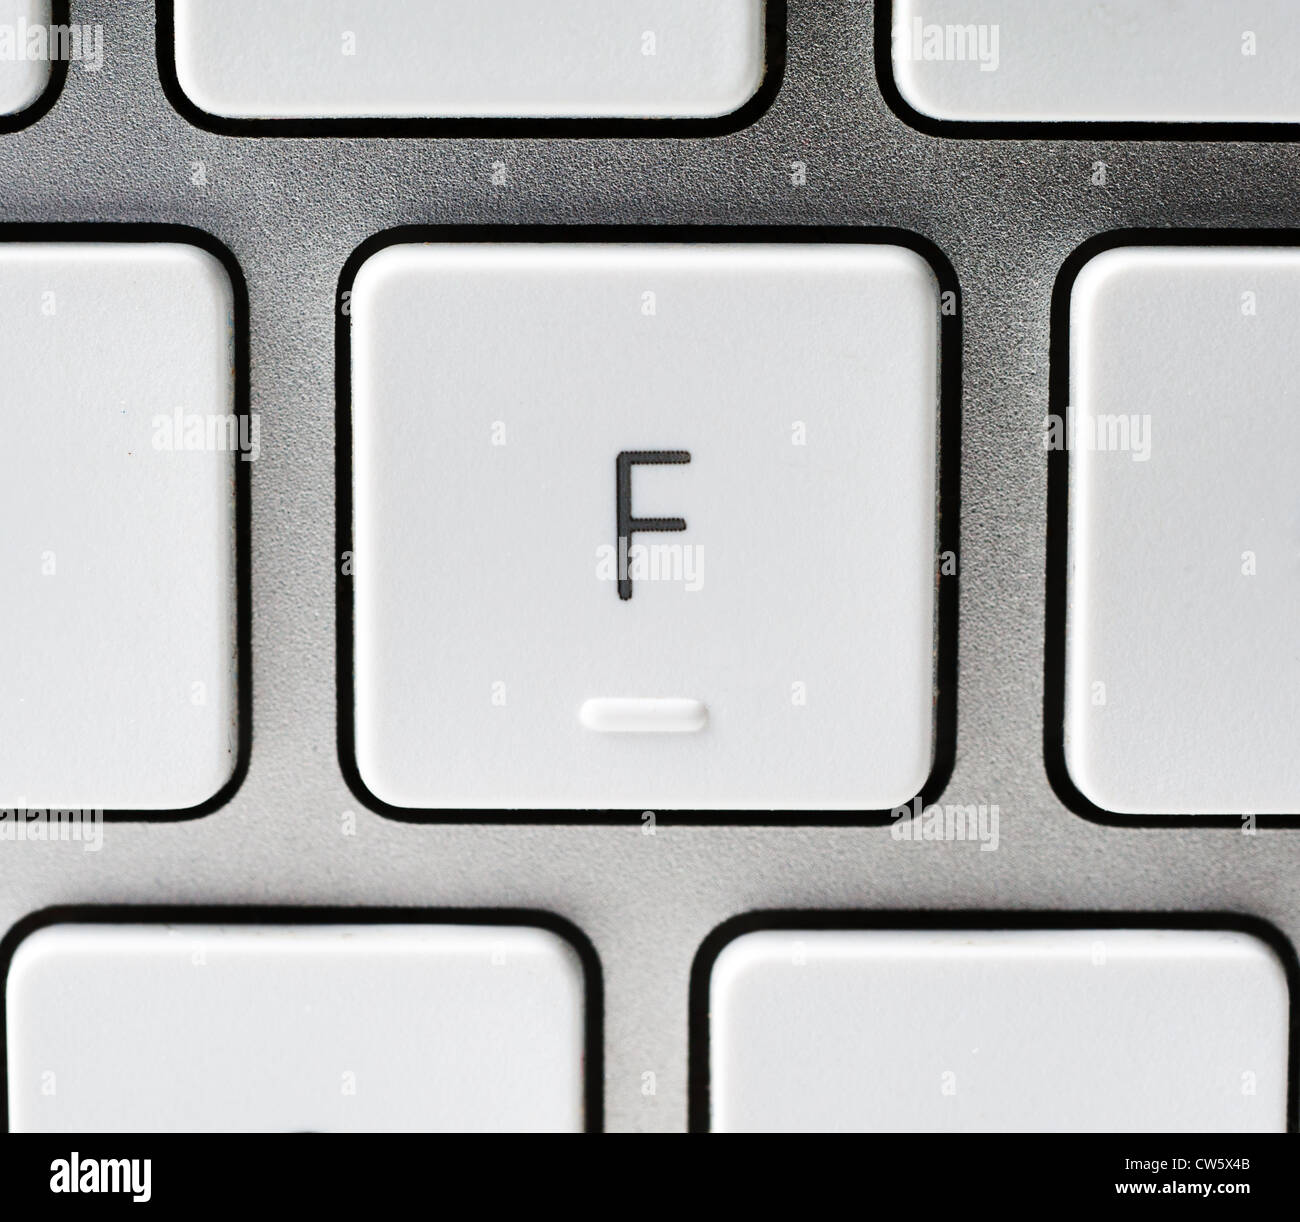 Letter F on an Apple keyboard - Stock Image